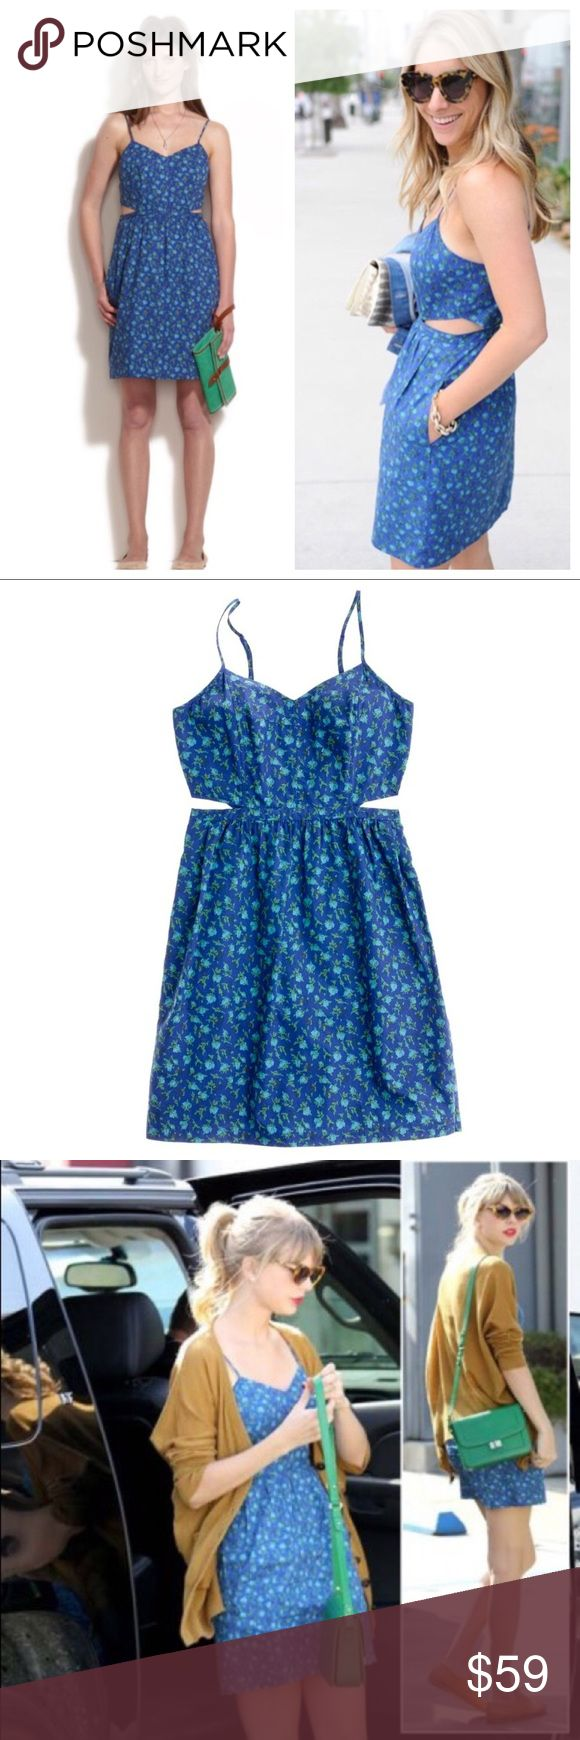 """Madewell Rosette Cut-out Dress Hard to find and in perfect condition: Madewell cotton cut-out floral dress!Great dress for day as well as summer date nights! Measures approximately 25.5"""" long, bust 15"""". Perfect condition - worn twice. Madewell Dresses Mini"""